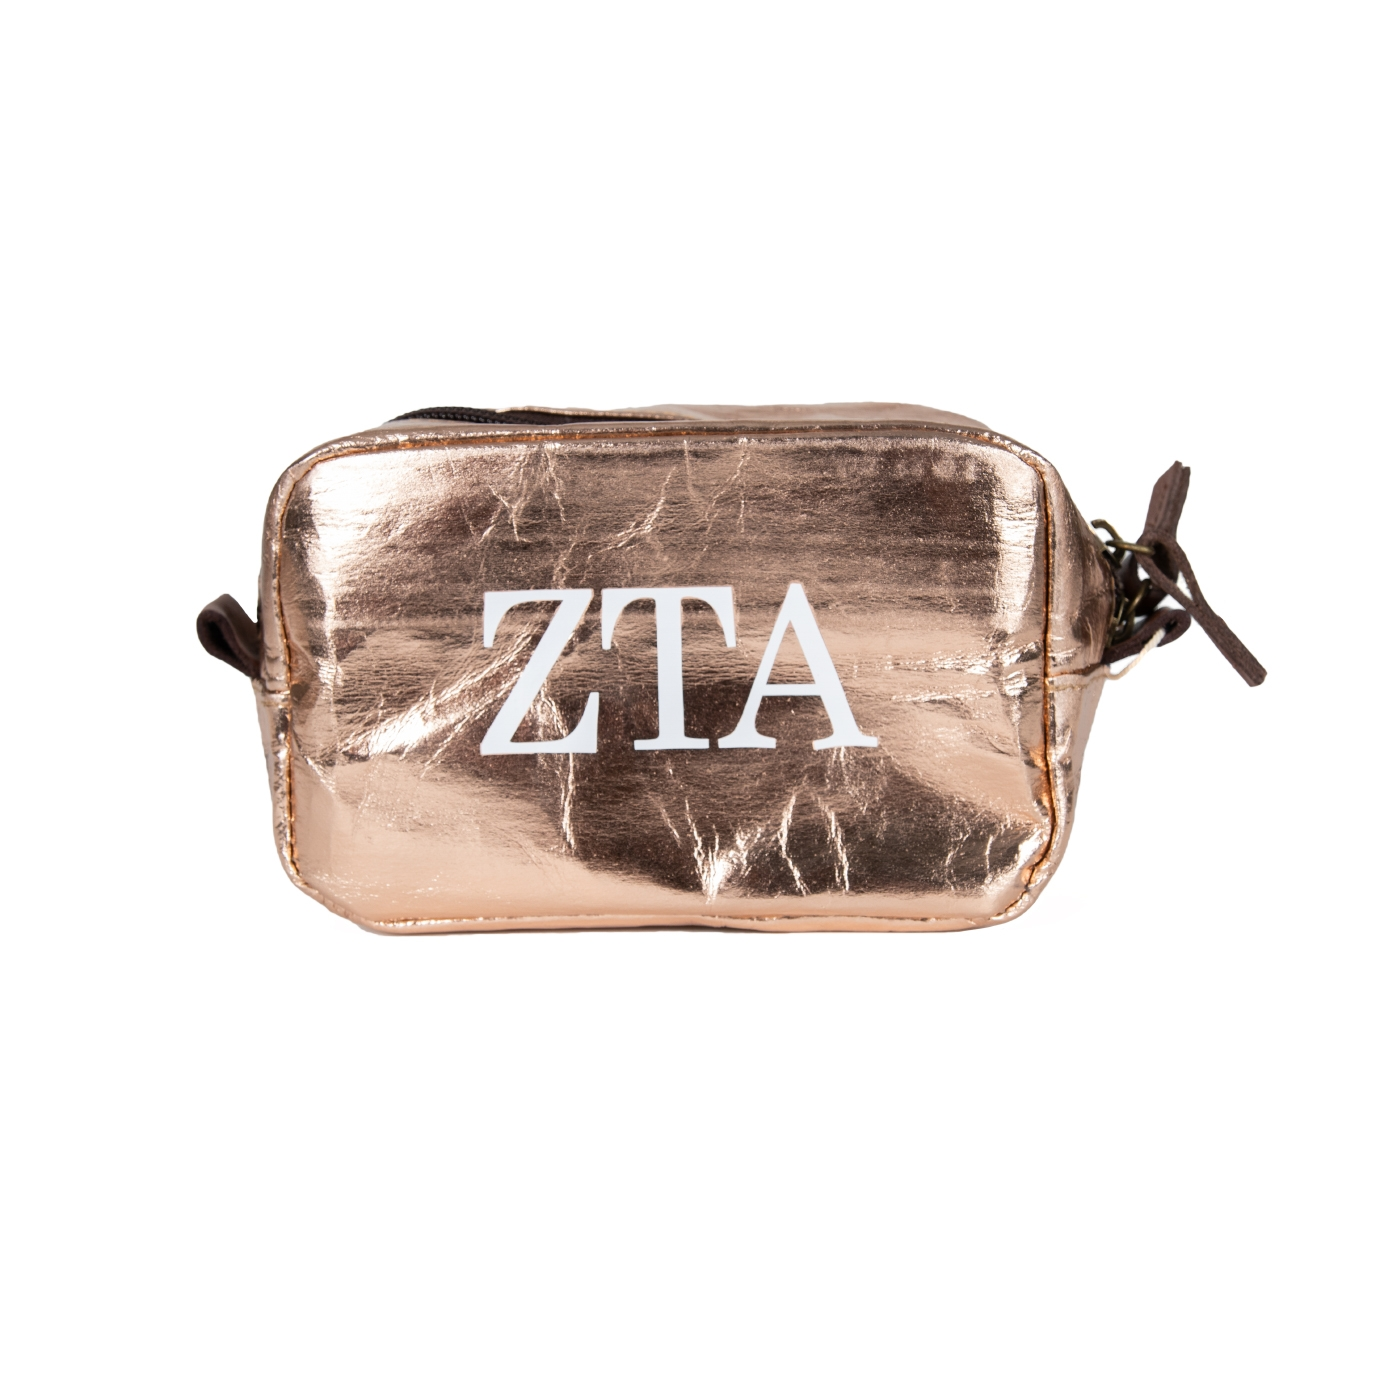 Zeta Tau Alpha Small Cosmetic Bag